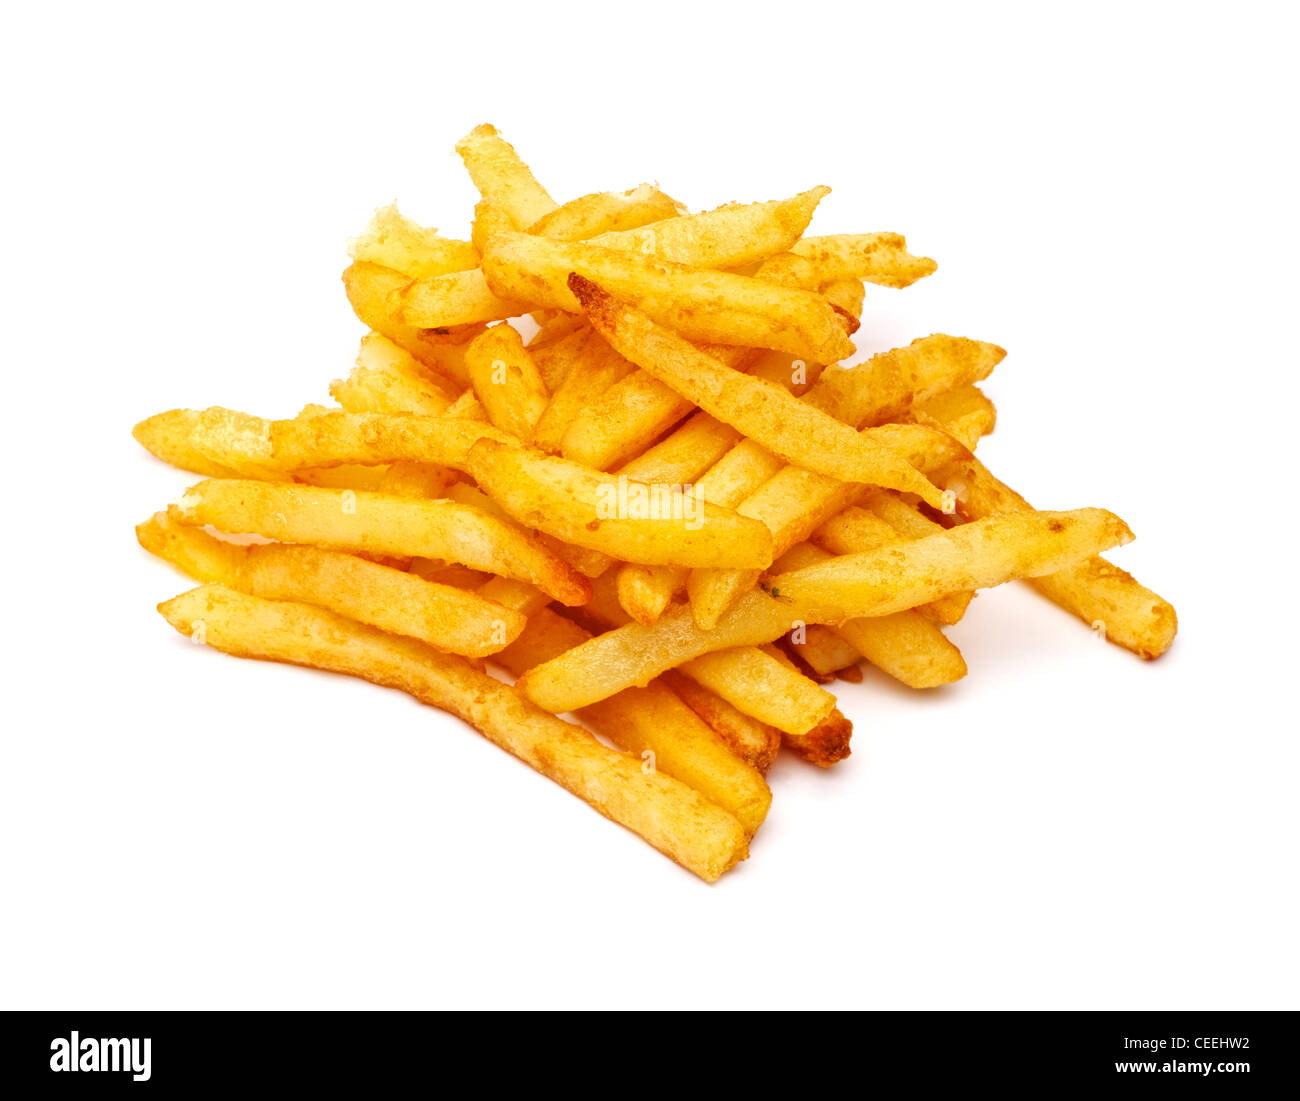 French fries, chips - Stock Image